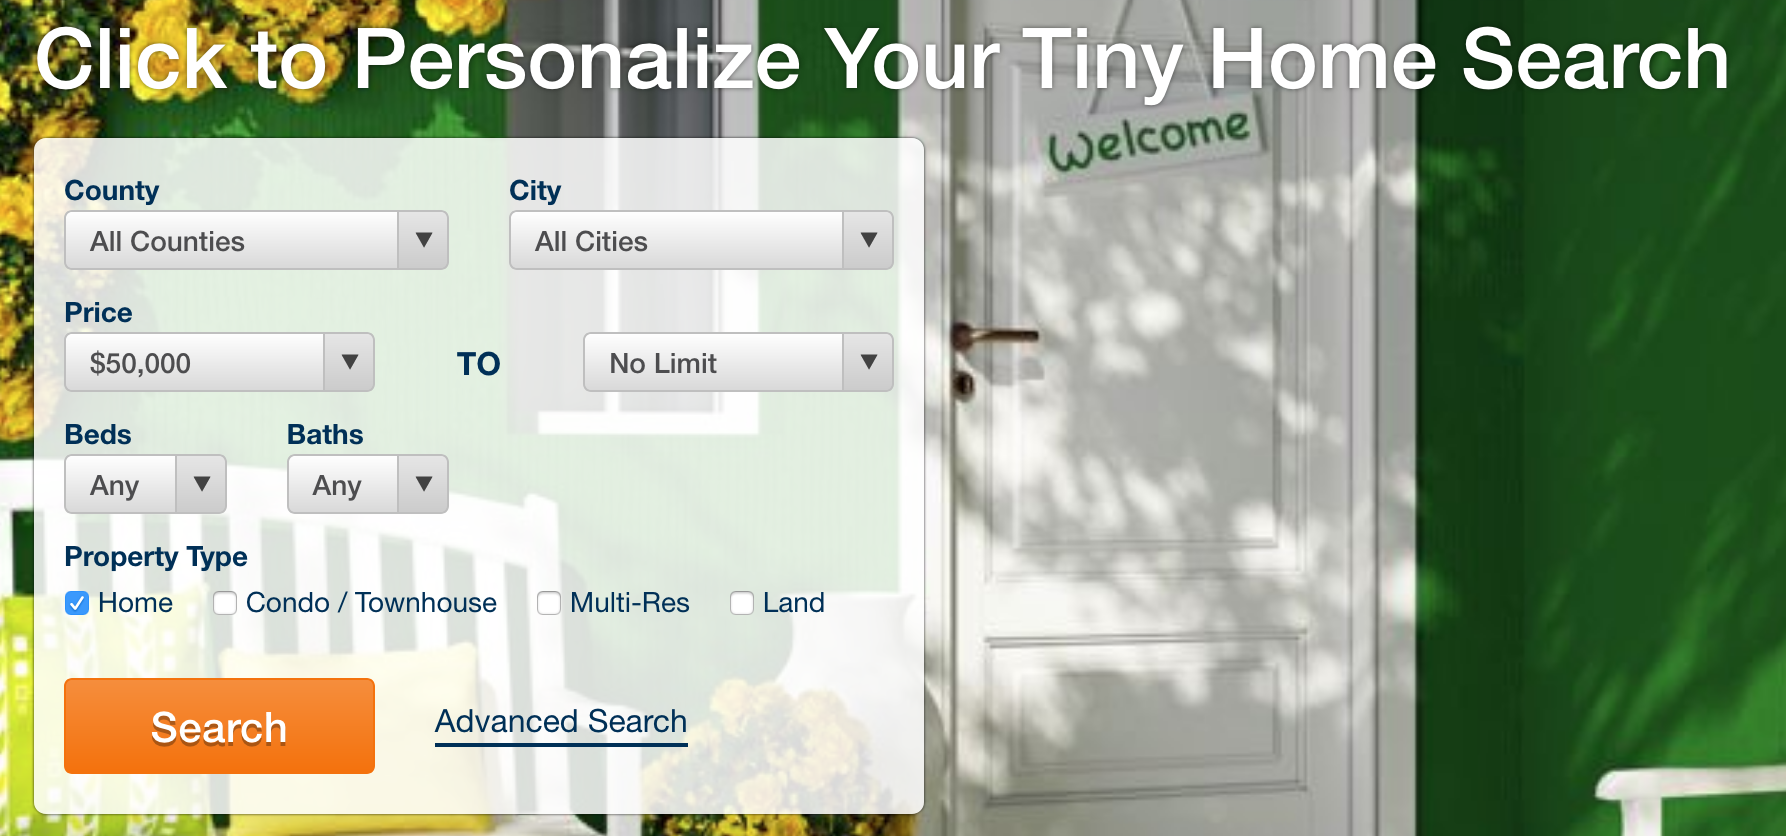 See all of the tiny houses in the East Bay Area CA